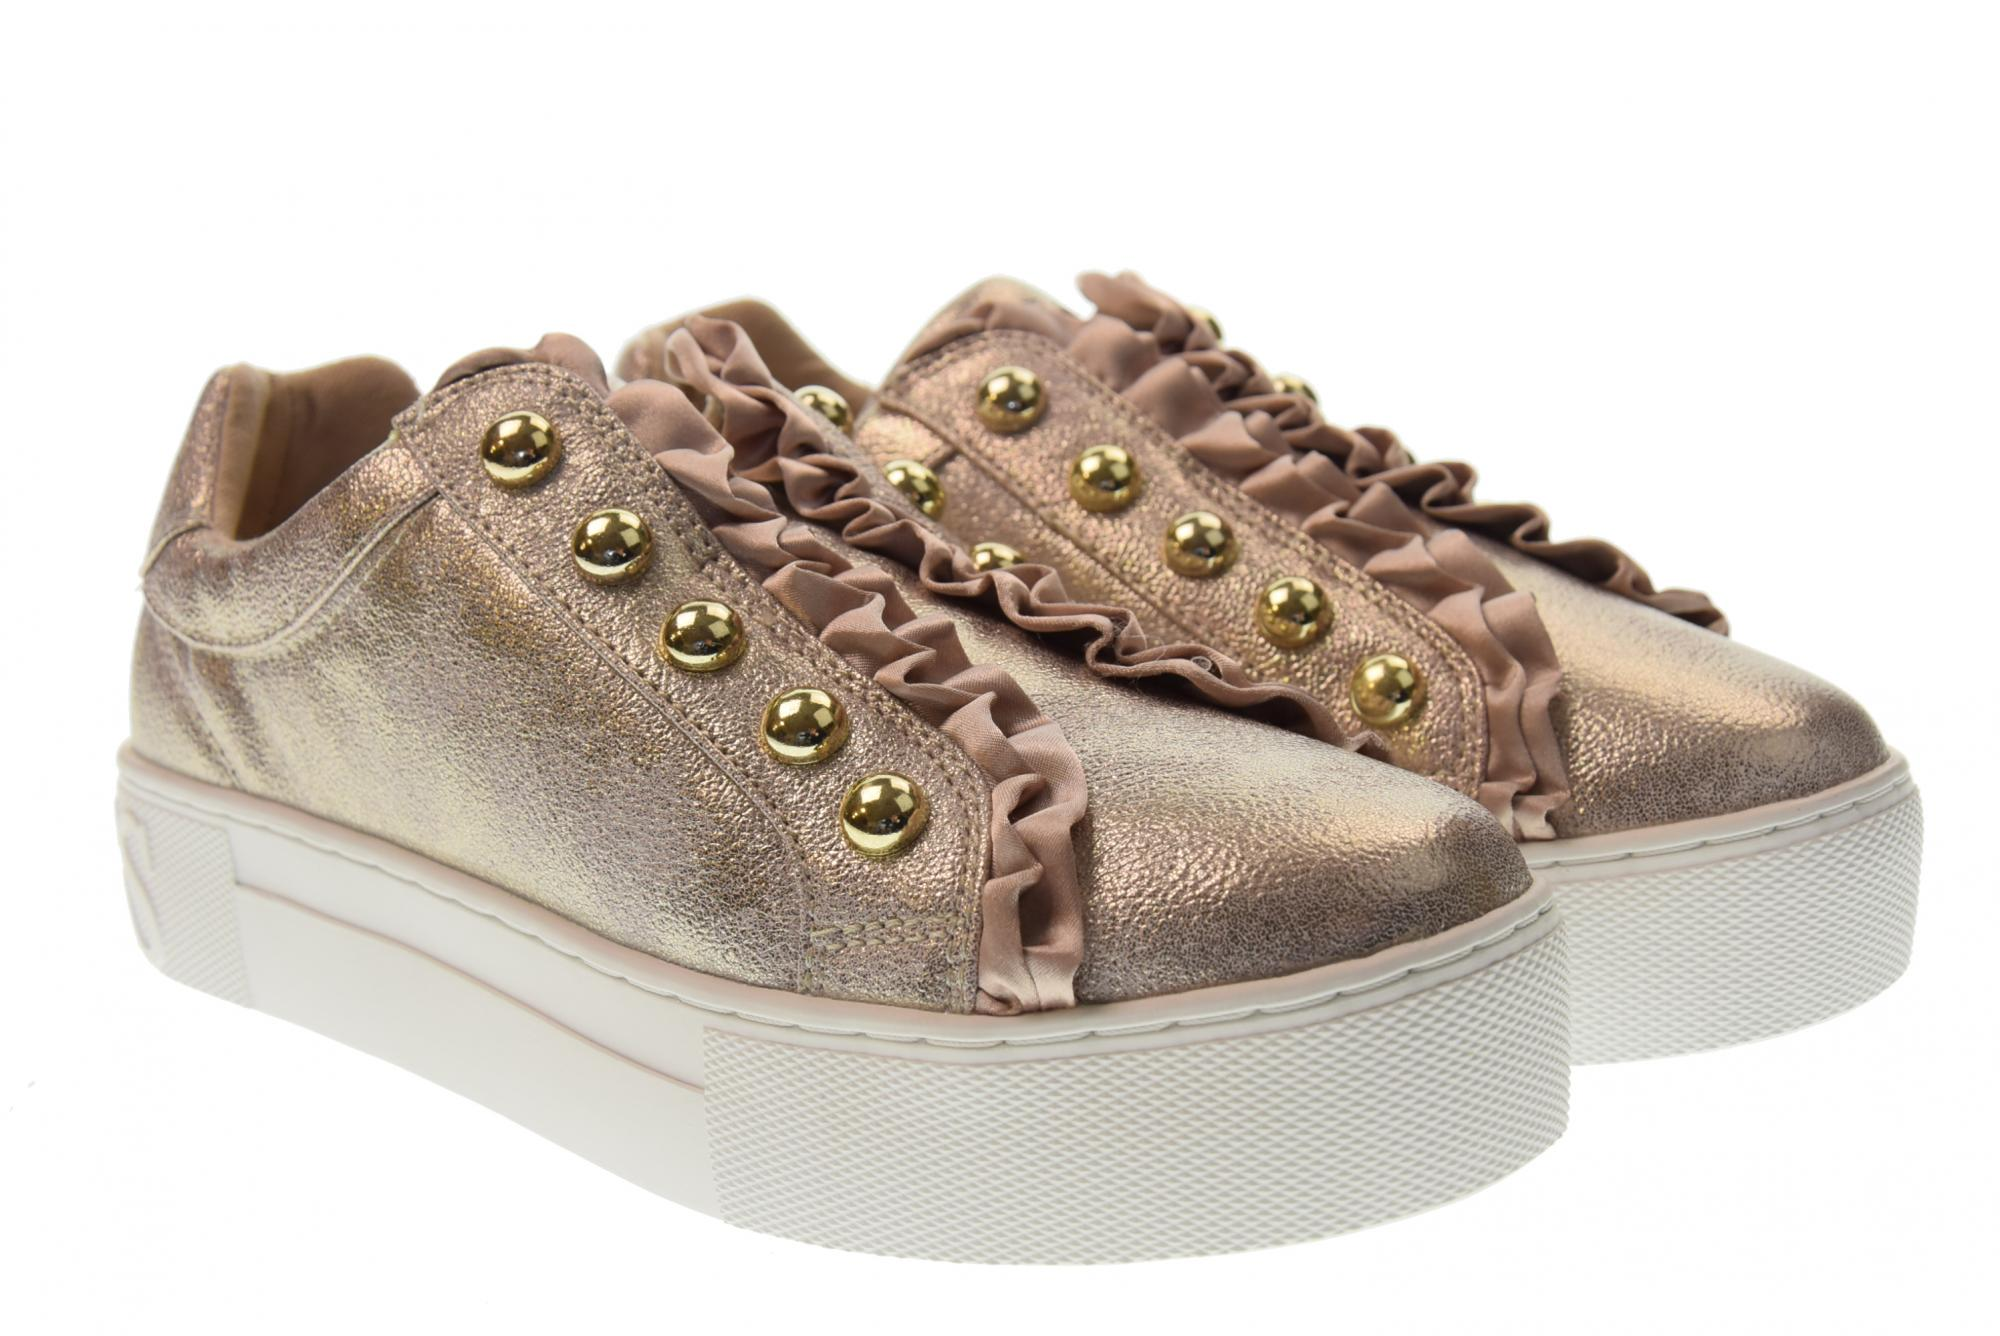 7ea3c3f326ae GUESS P19u shoes woman sneakers with platform without laces FL5MEZLEL12  PLATINO